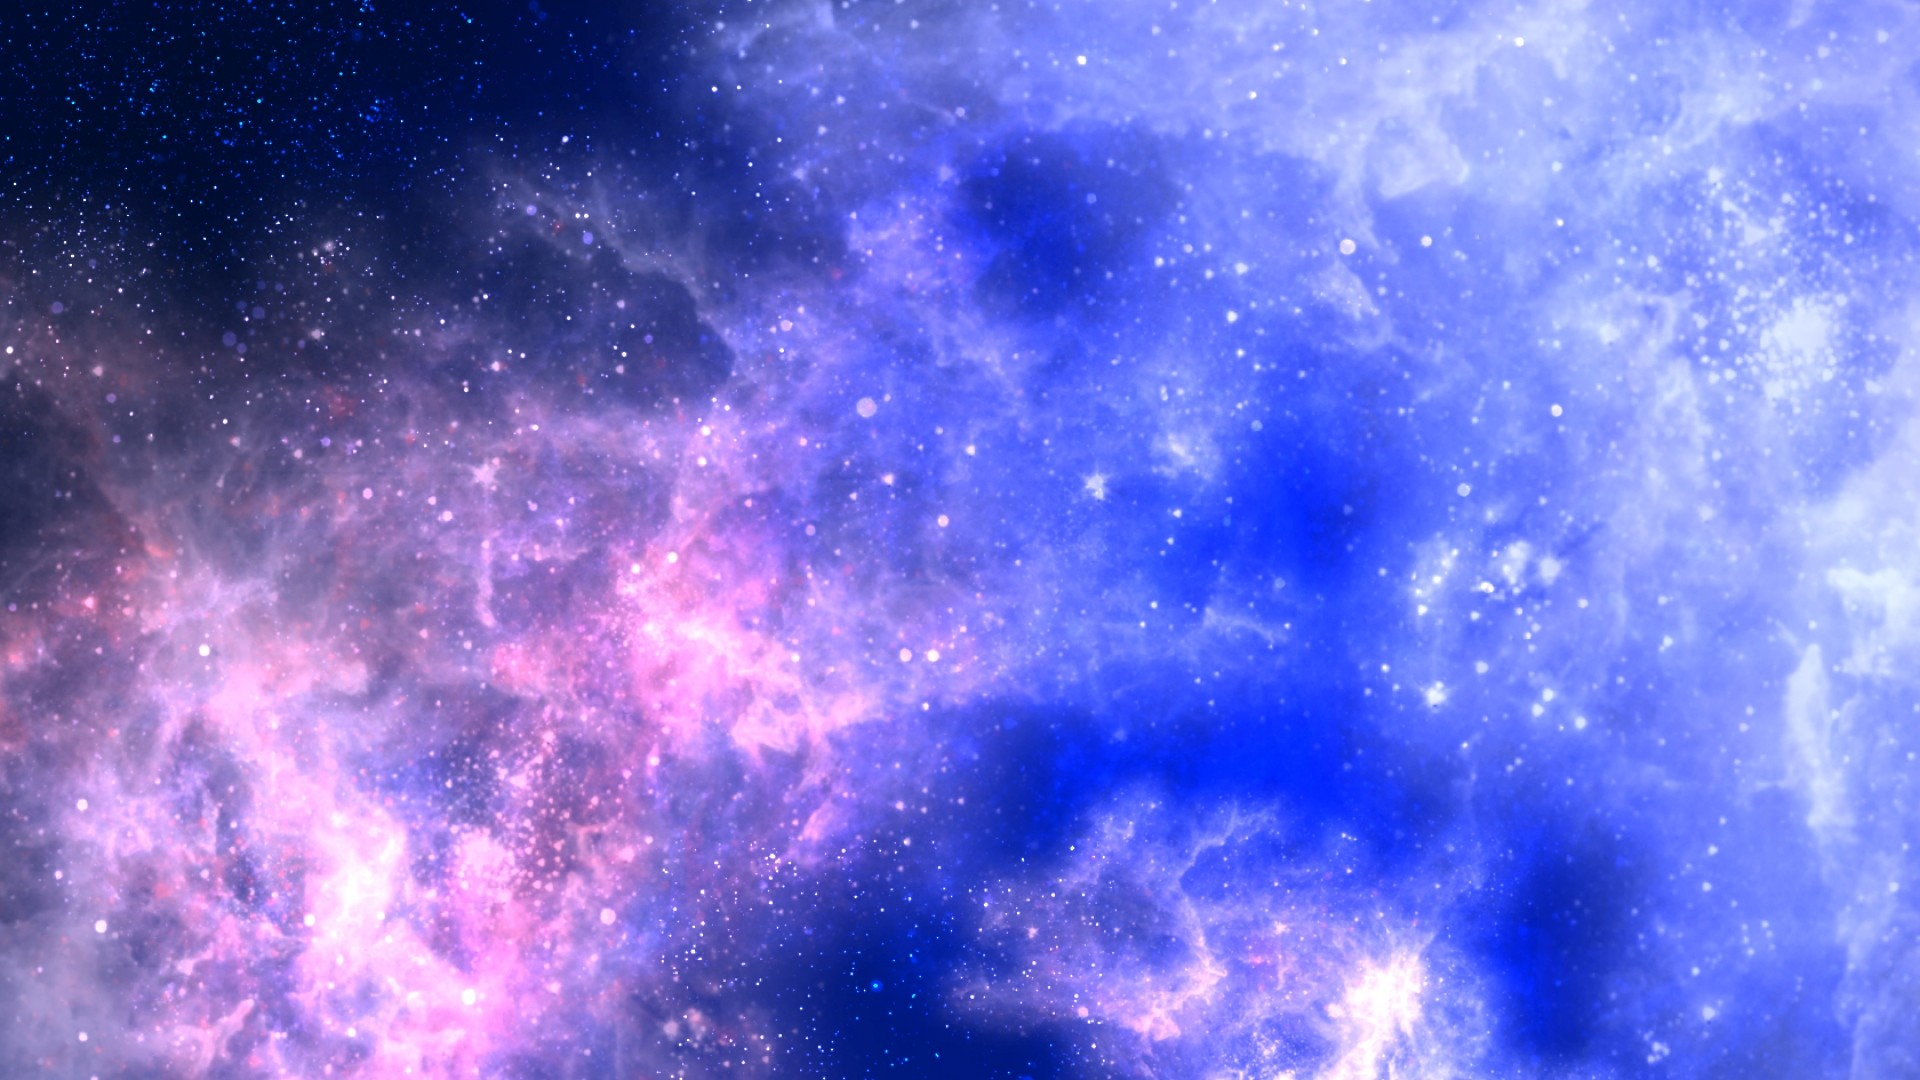 Purple Galaxy Wallpaper Tumblr Images & Pictures – Becuo | Galaxy |  Pinterest | Purple galaxy wallpaper